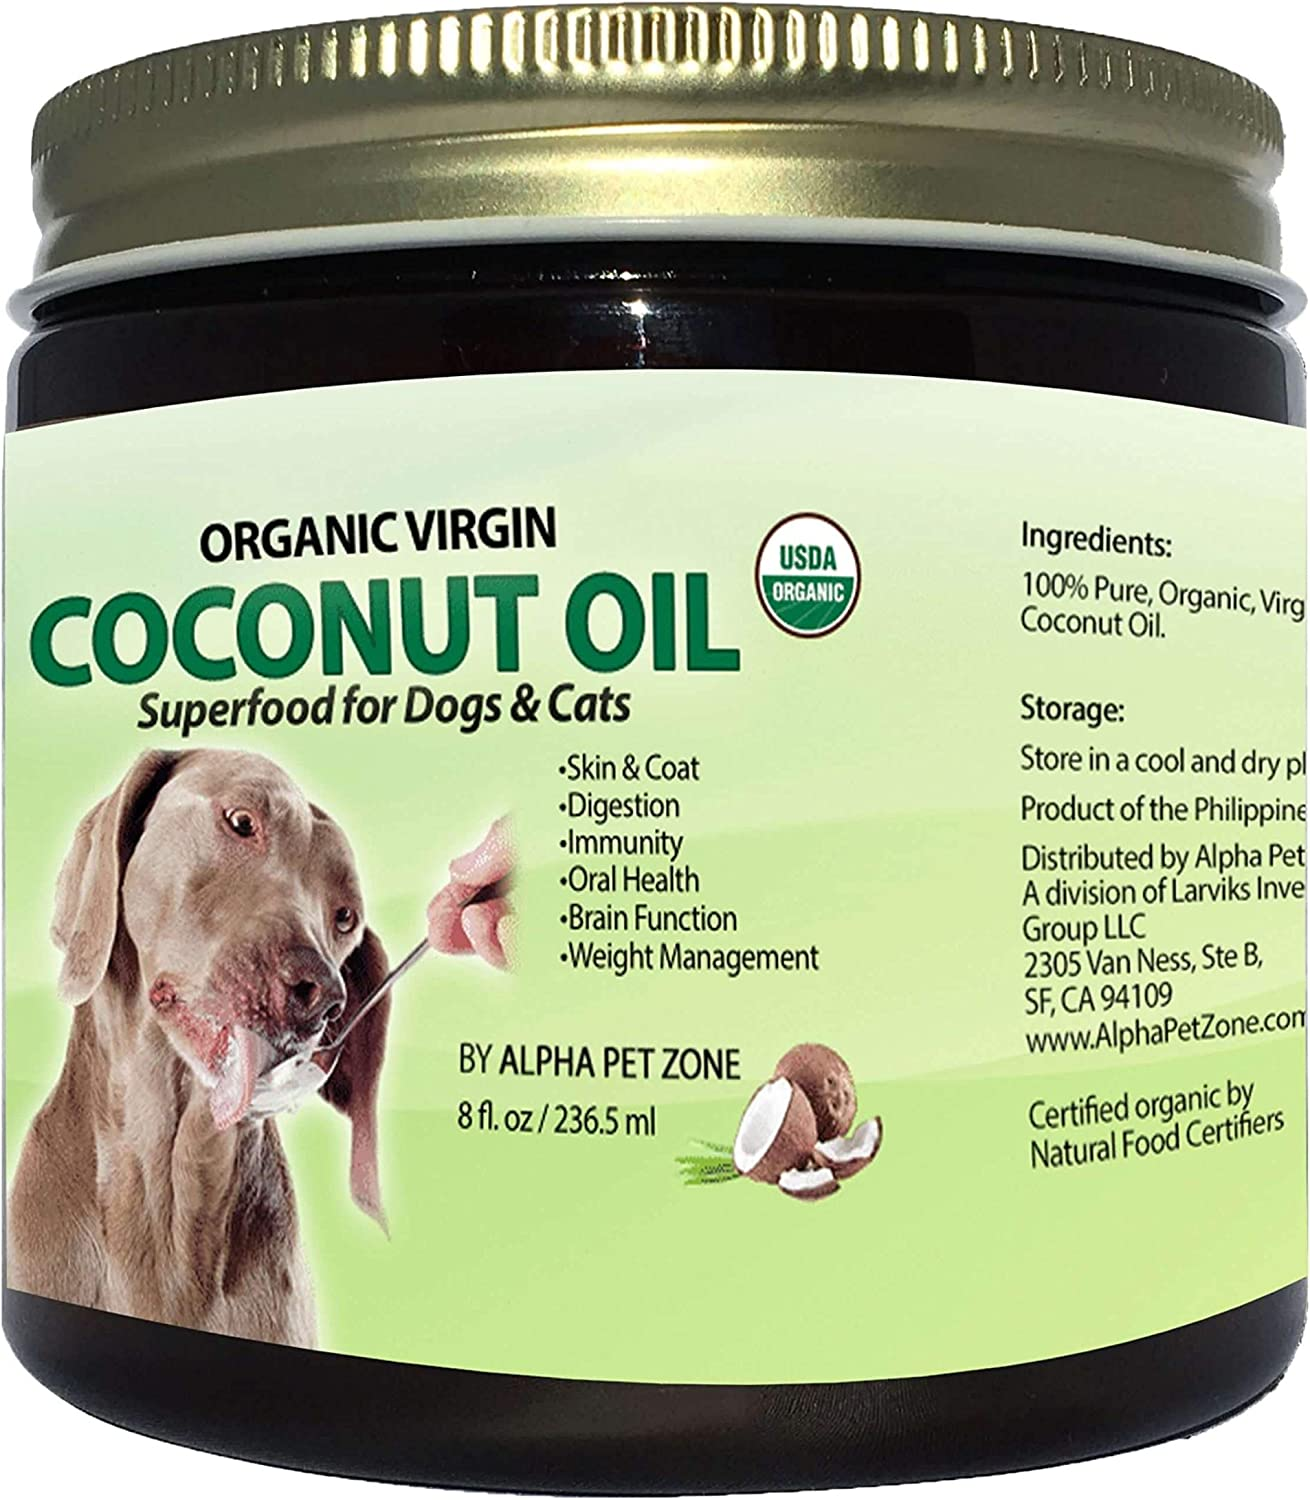 ALPHA PET ZONE Organic Virgin Coconut Oil for Dogs to Eat, Skin and Coat Superfood, Natural Digestive & Immune Support, 8 oz